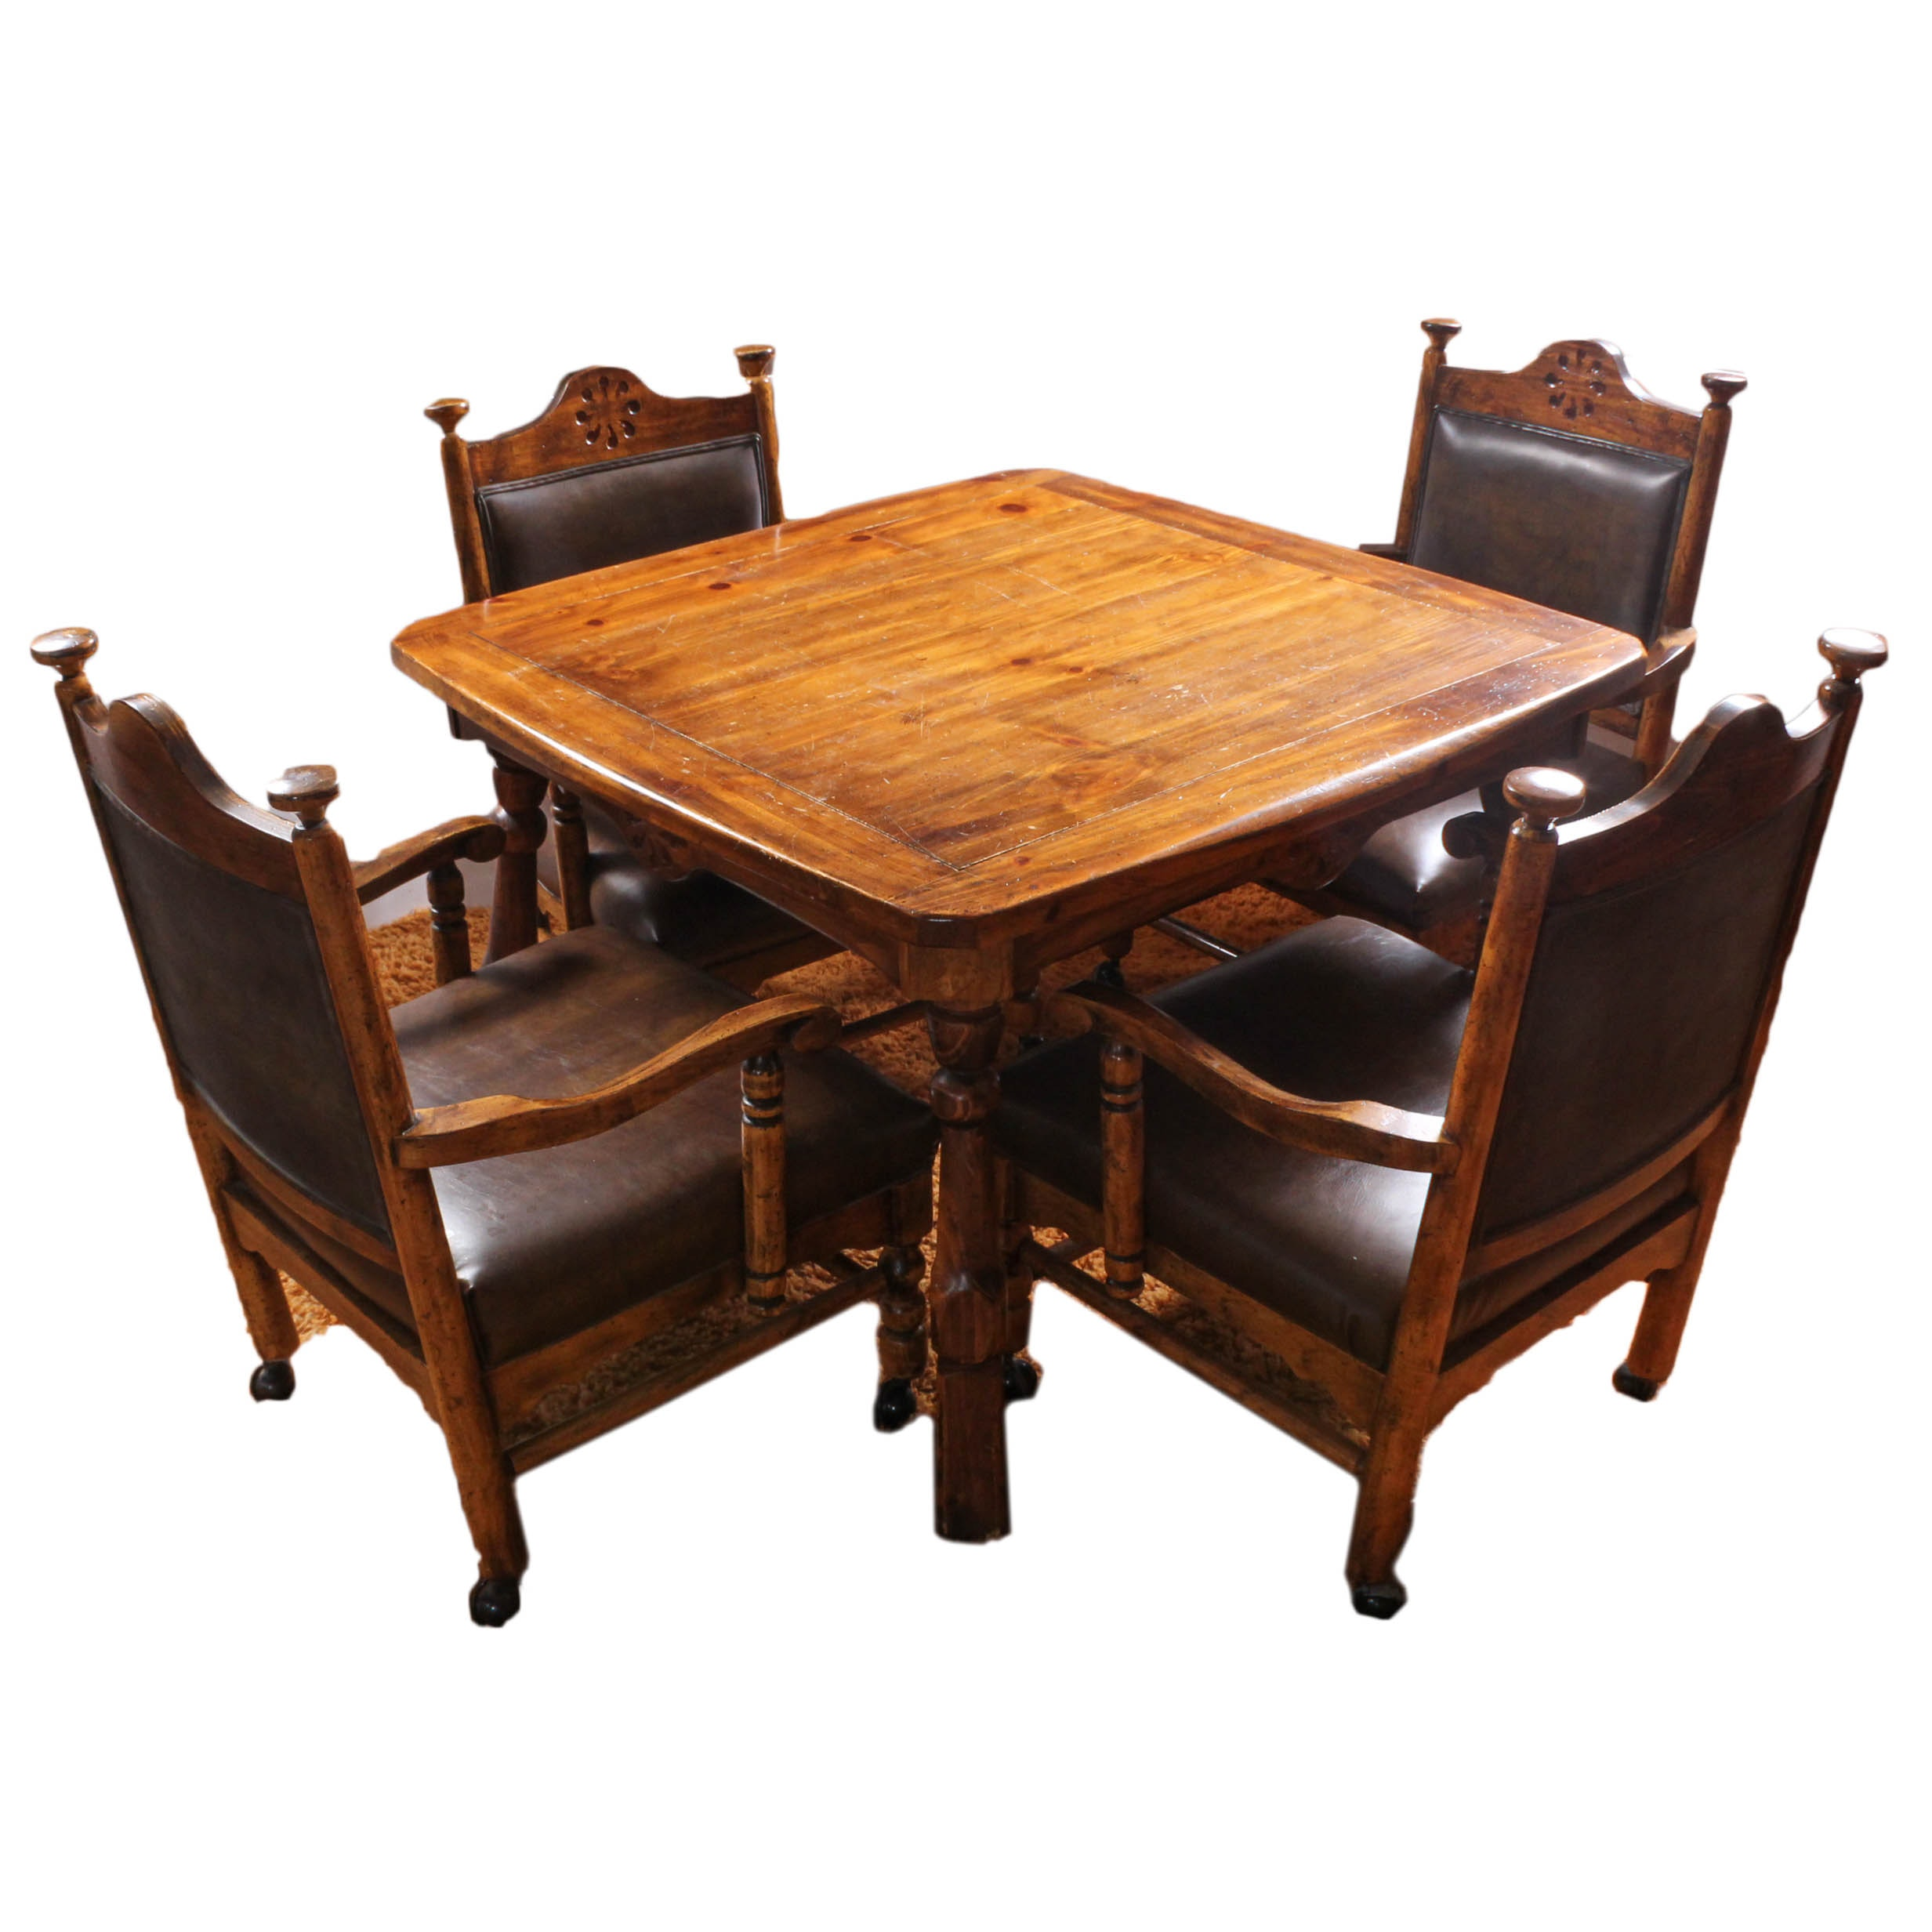 Vintage Wooden Table and Chair Set